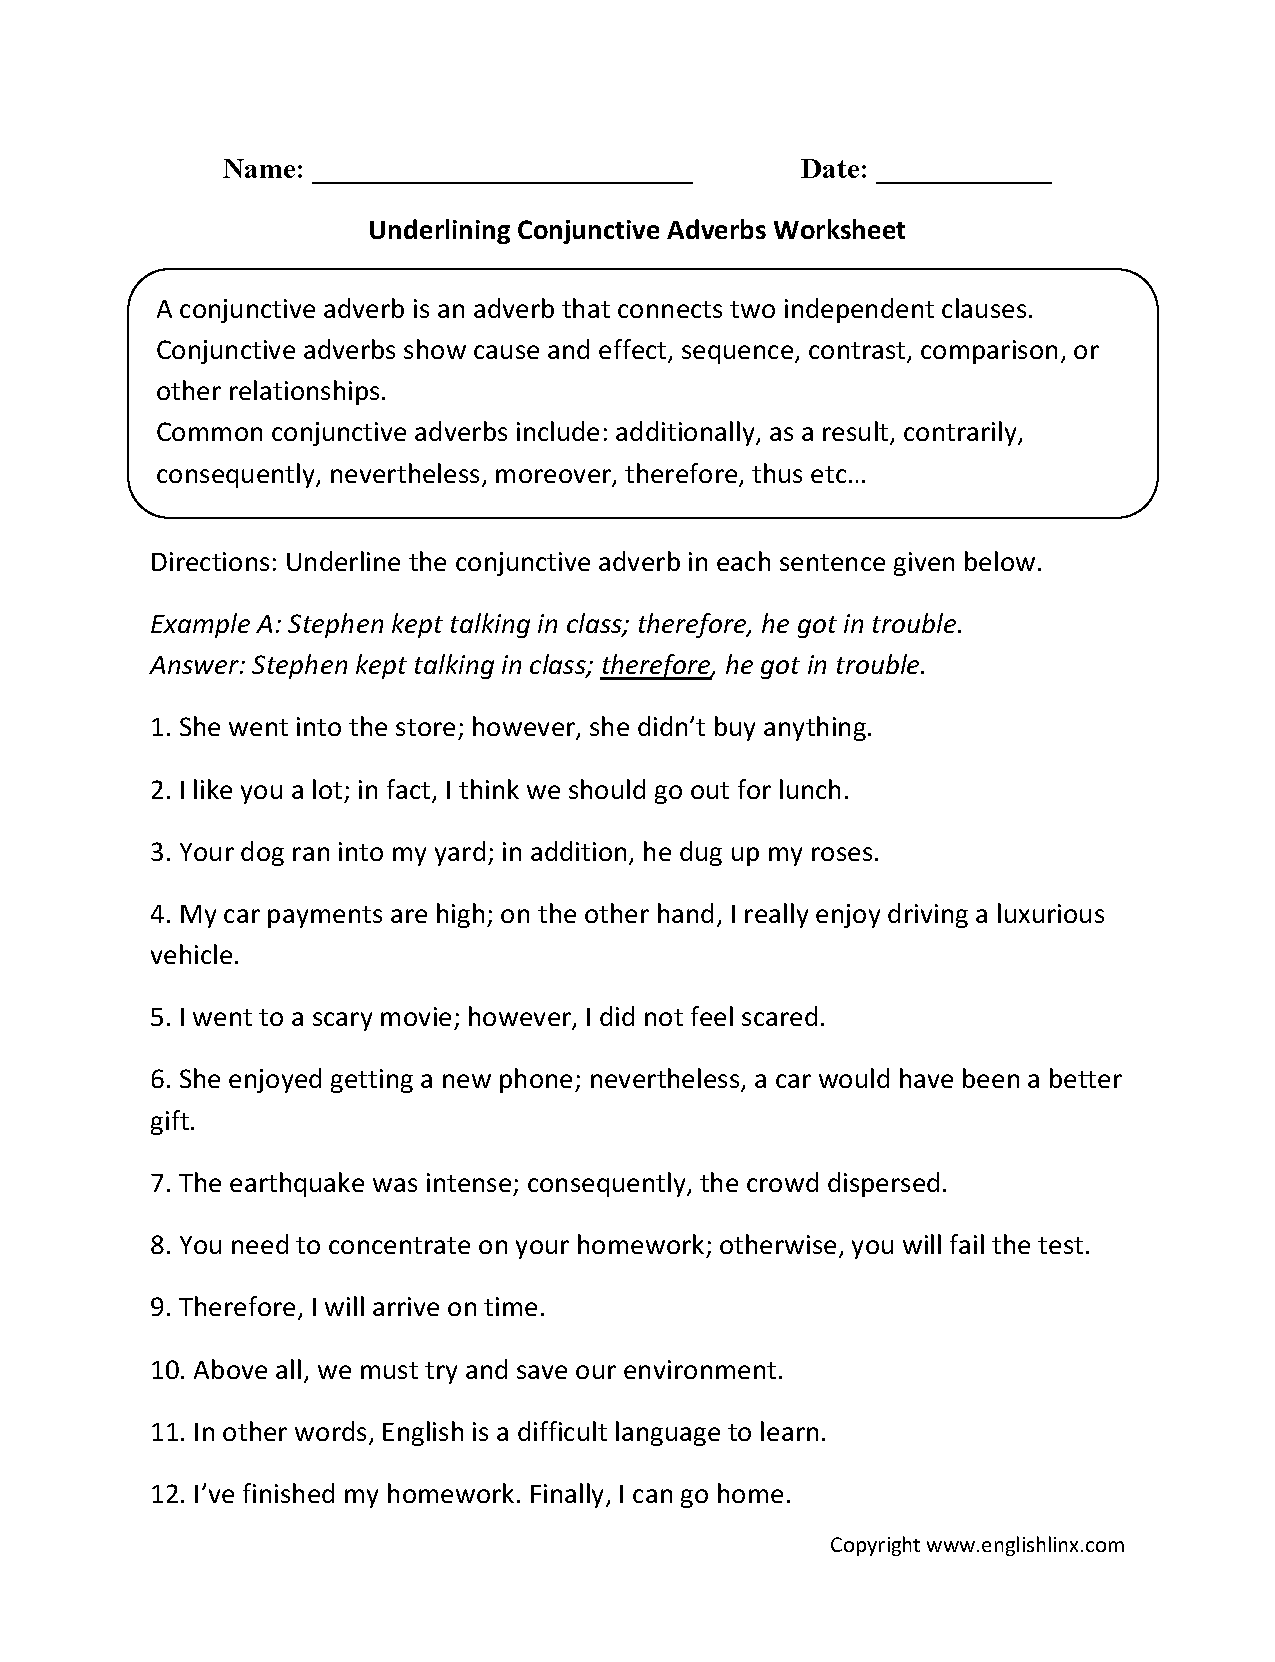 Proatmealus  Seductive Englishlinxcom  Conjunctions Worksheets With Licious Worksheet With Endearing Pythagorean Word Problems Worksheet Also Dependant Verification Worksheet In Addition Geometry Review Worksheet And Spanish Verb Conjugation Worksheets Printable As Well As Improving Self Esteem Worksheets Additionally Th Grade Science Printable Worksheets From Englishlinxcom With Proatmealus  Licious Englishlinxcom  Conjunctions Worksheets With Endearing Worksheet And Seductive Pythagorean Word Problems Worksheet Also Dependant Verification Worksheet In Addition Geometry Review Worksheet From Englishlinxcom